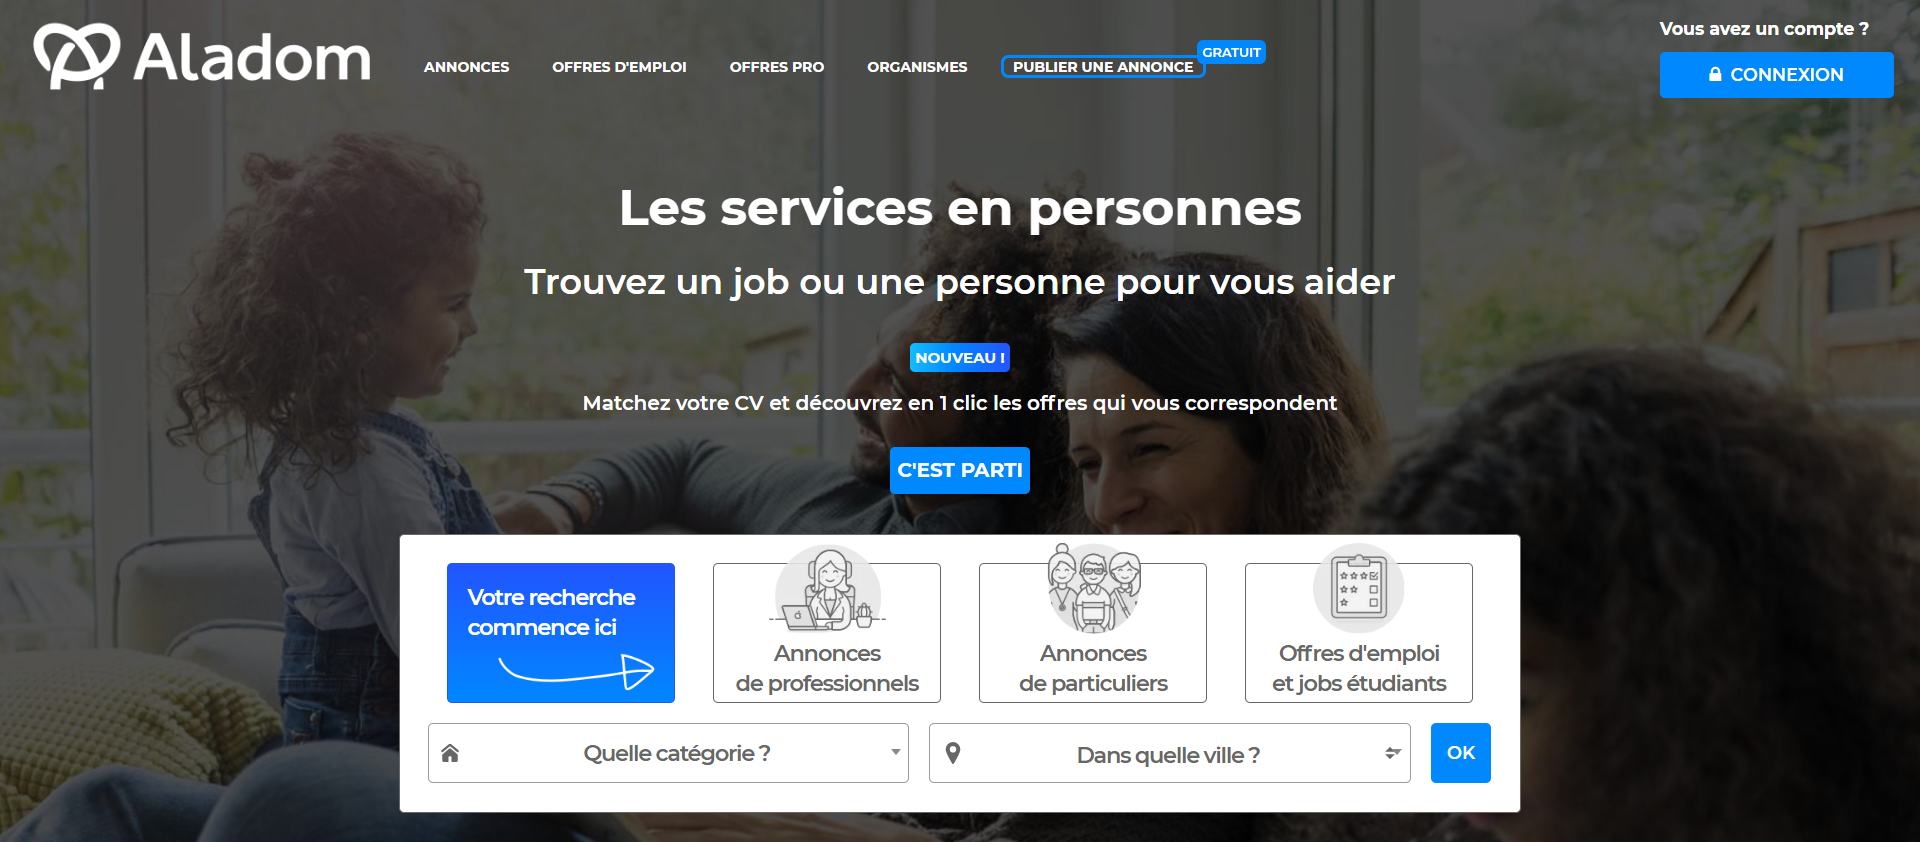 meilleures alternatives wannonce - aladom